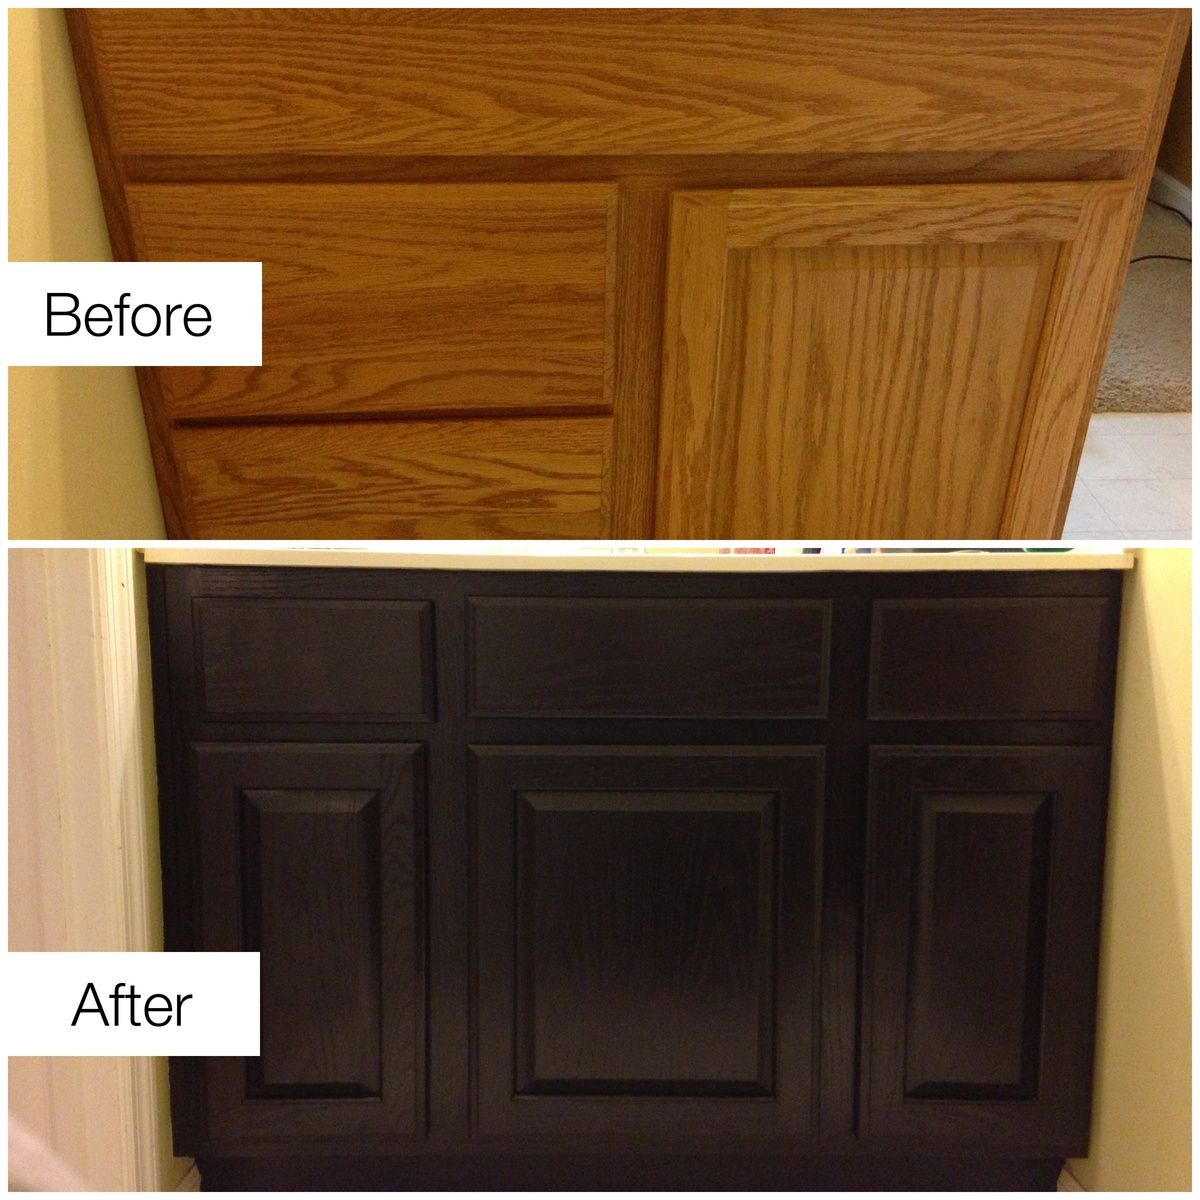 Ds Too Dark And Cant Be Undone Before After Staining Ugly Golden Oak Cabinets